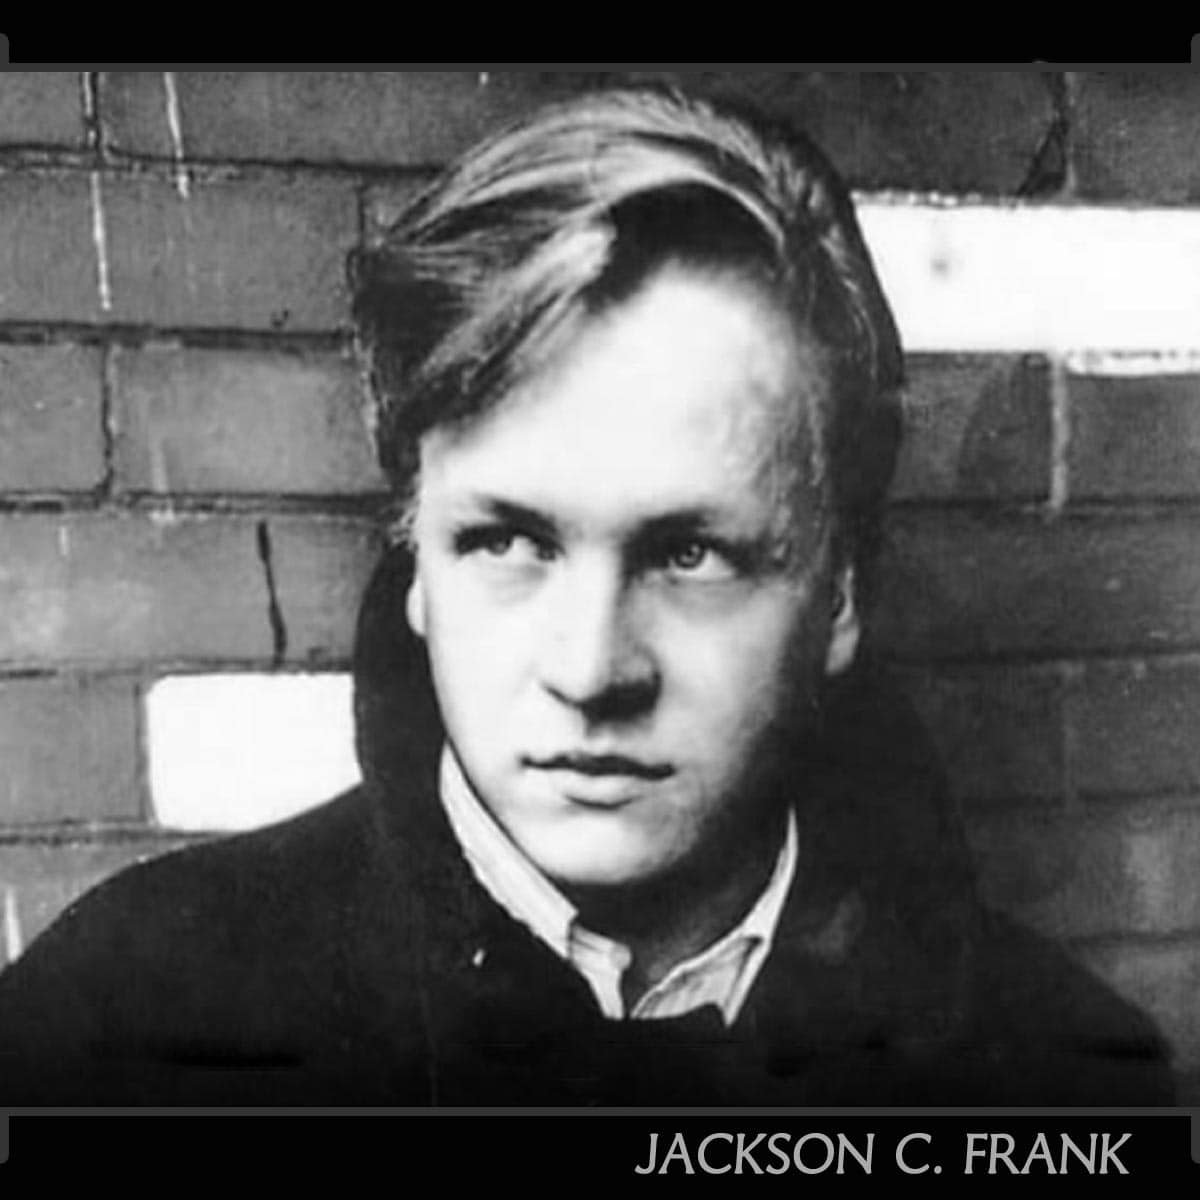 LOST AND FOUND: JACKSON C. FRANK